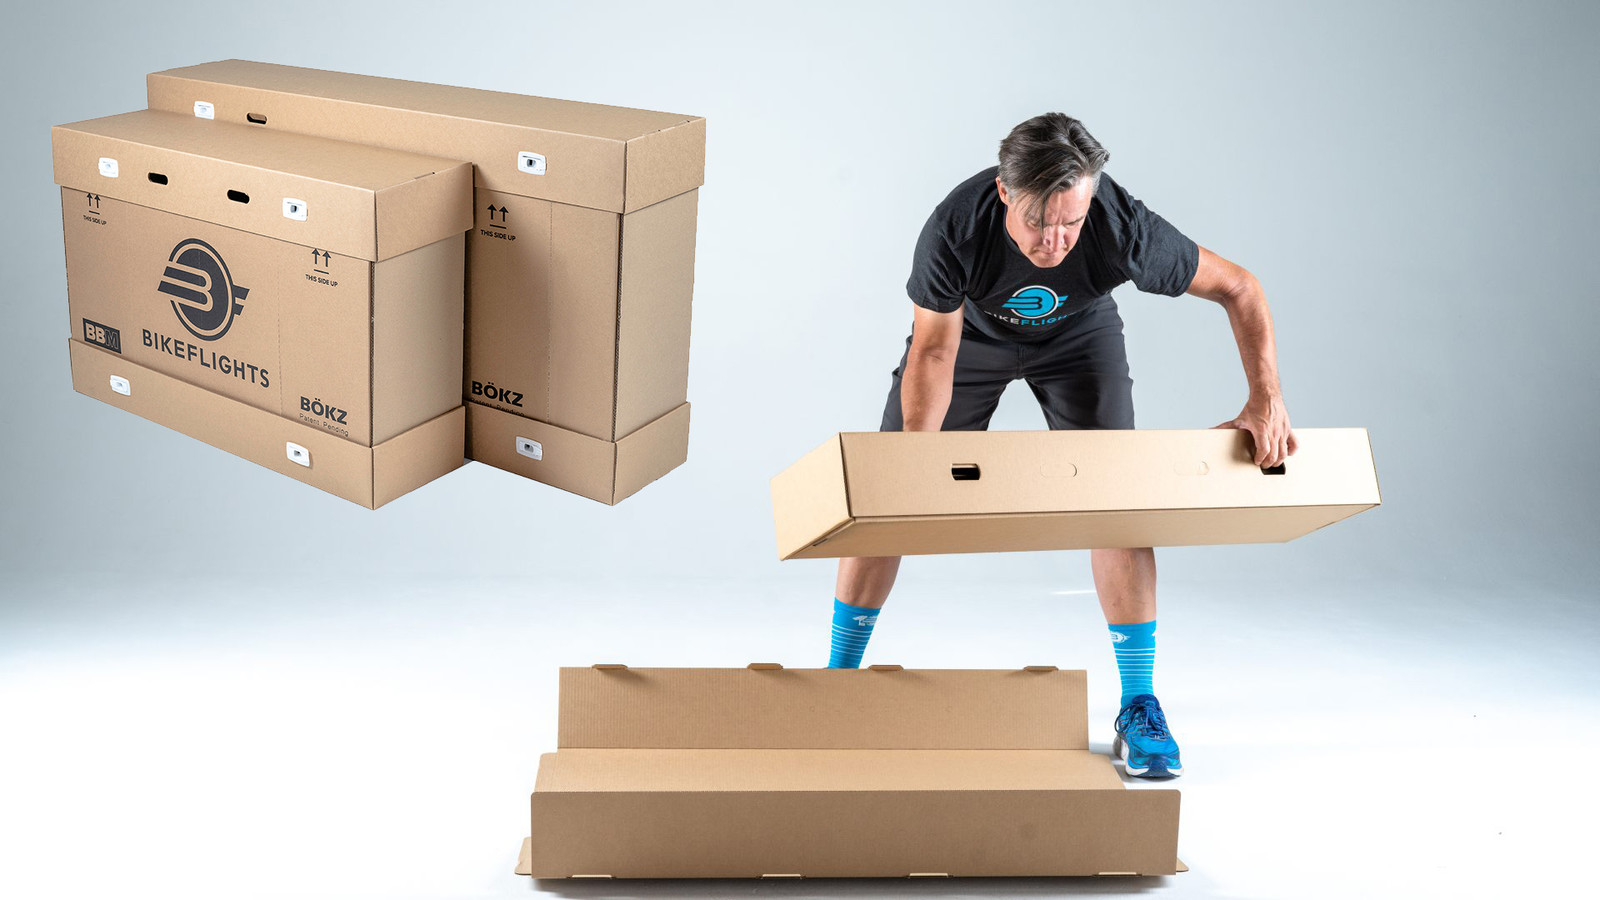 BikeFlights.com Introduces New Reusable Bike Box, A Pro-Level Solution for Protecting Bikes in Transit